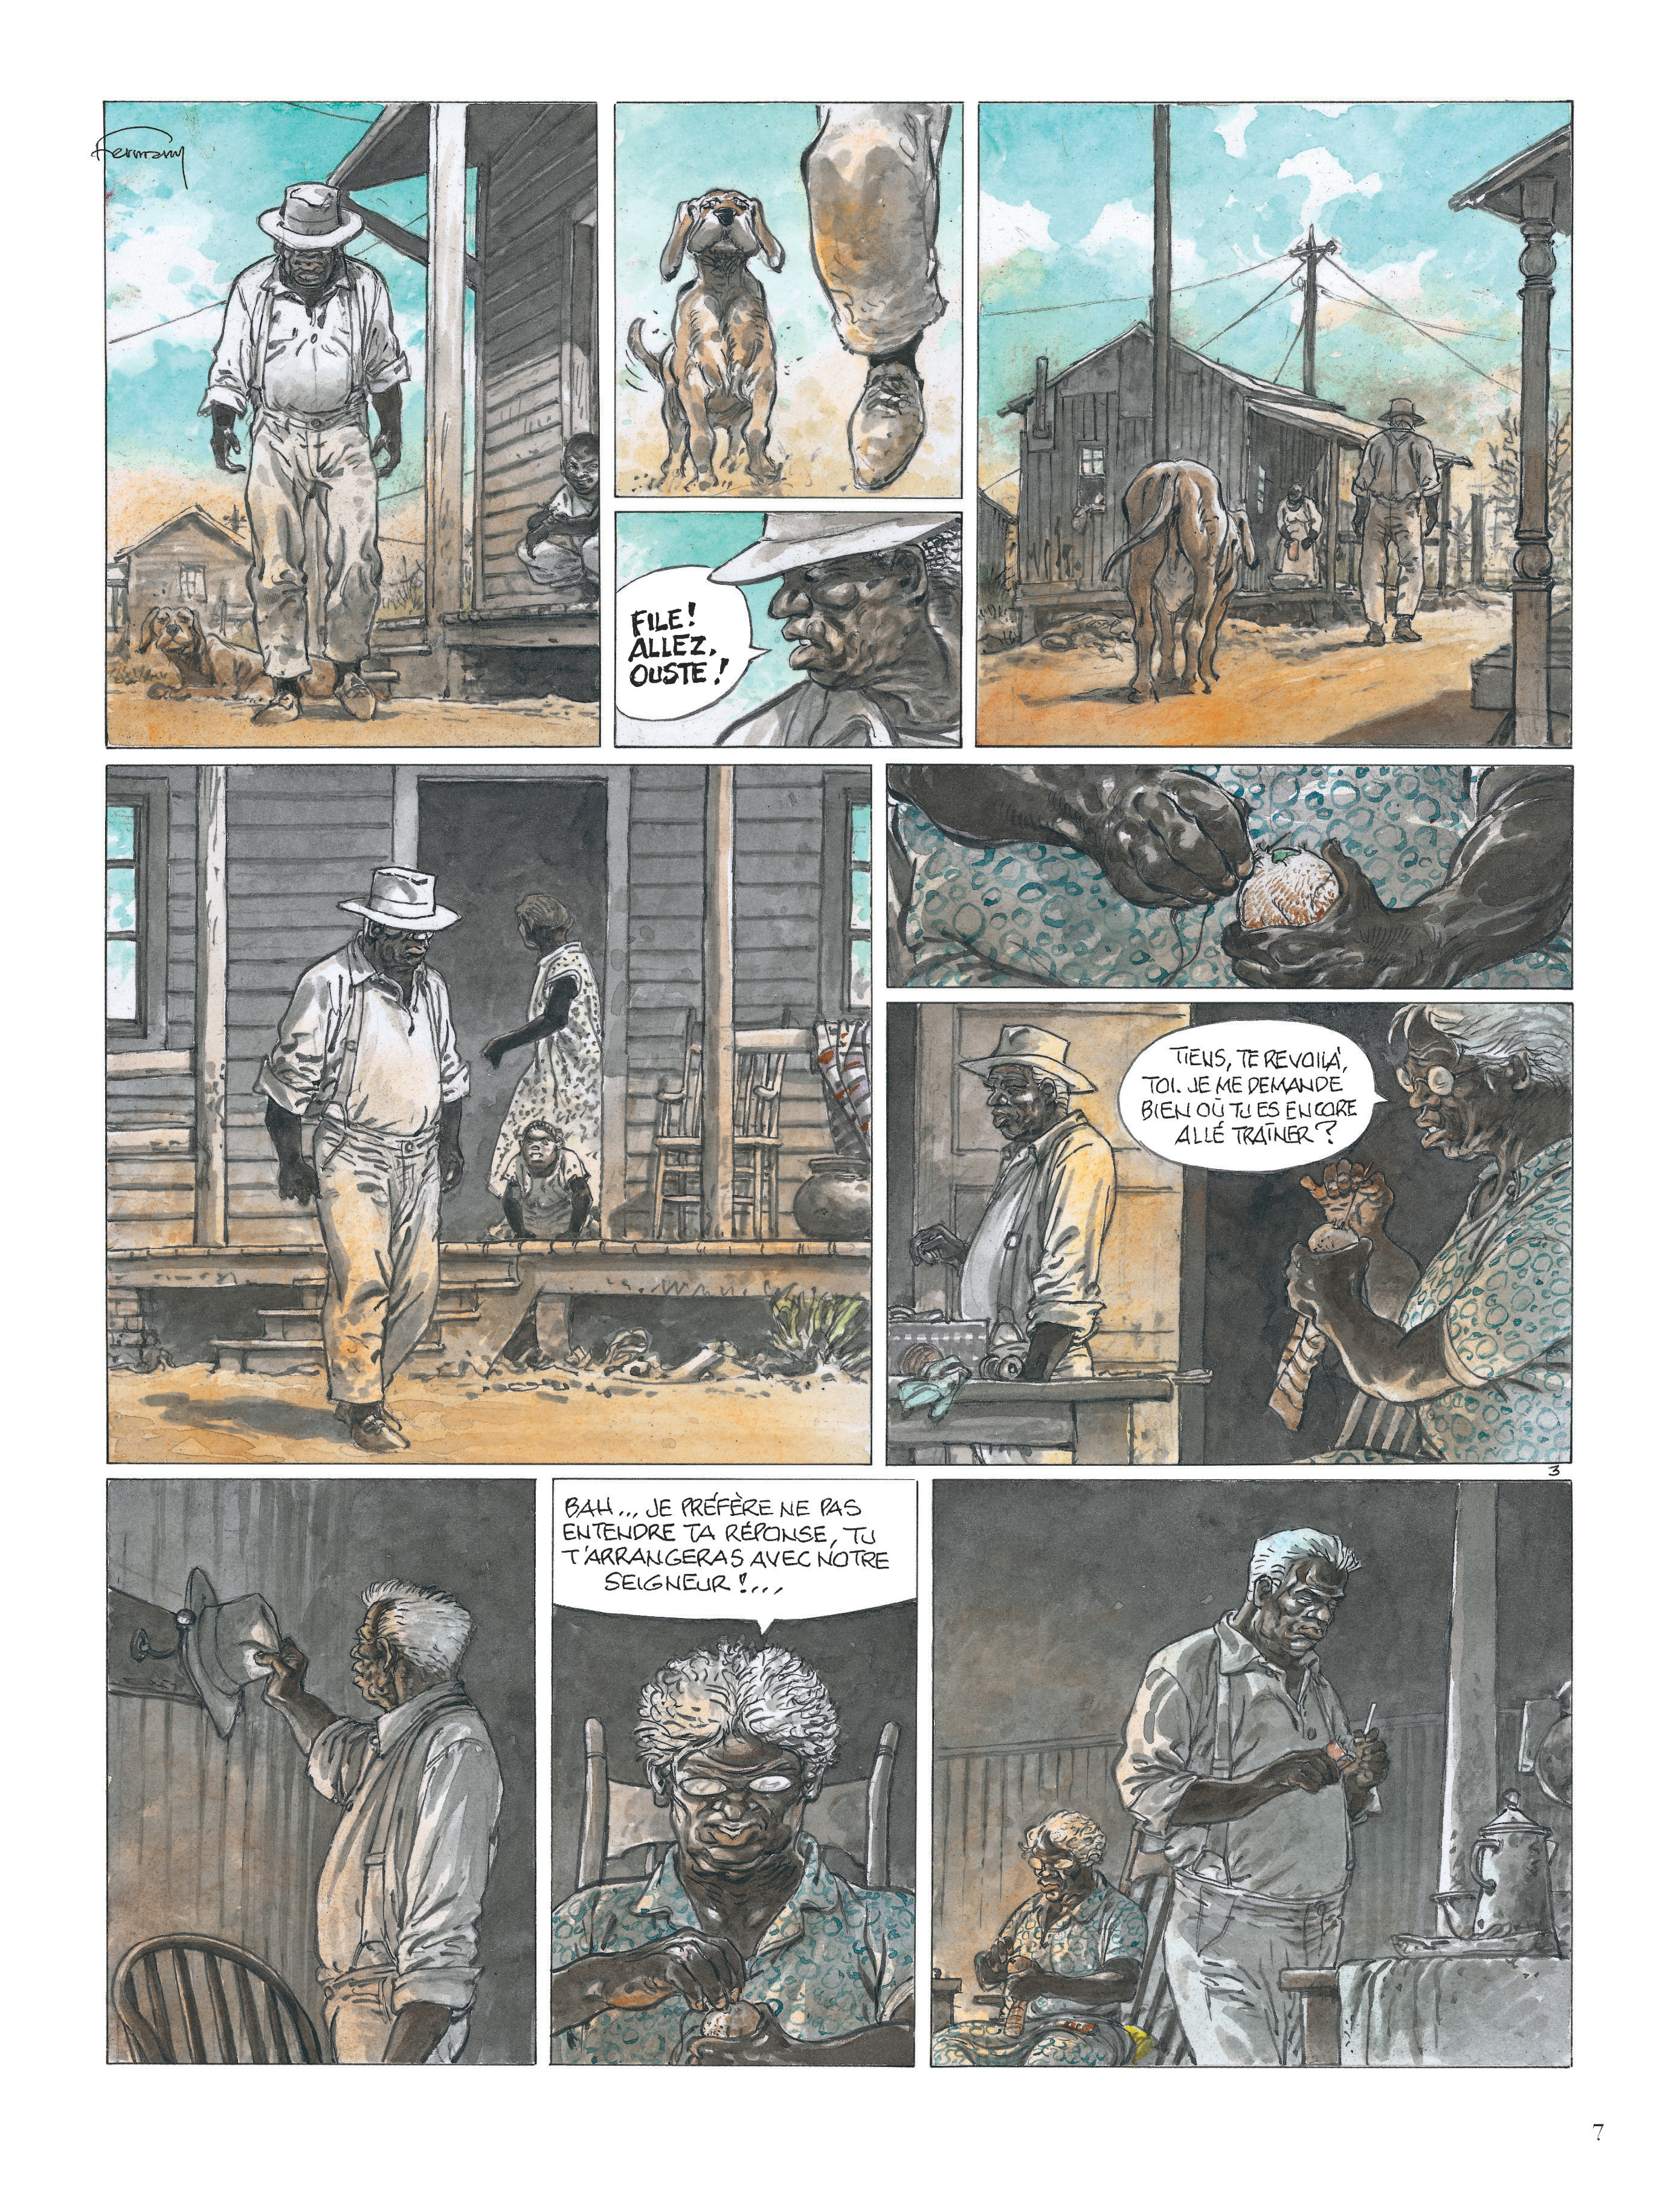 Old_Pa_Anderson_Page 7